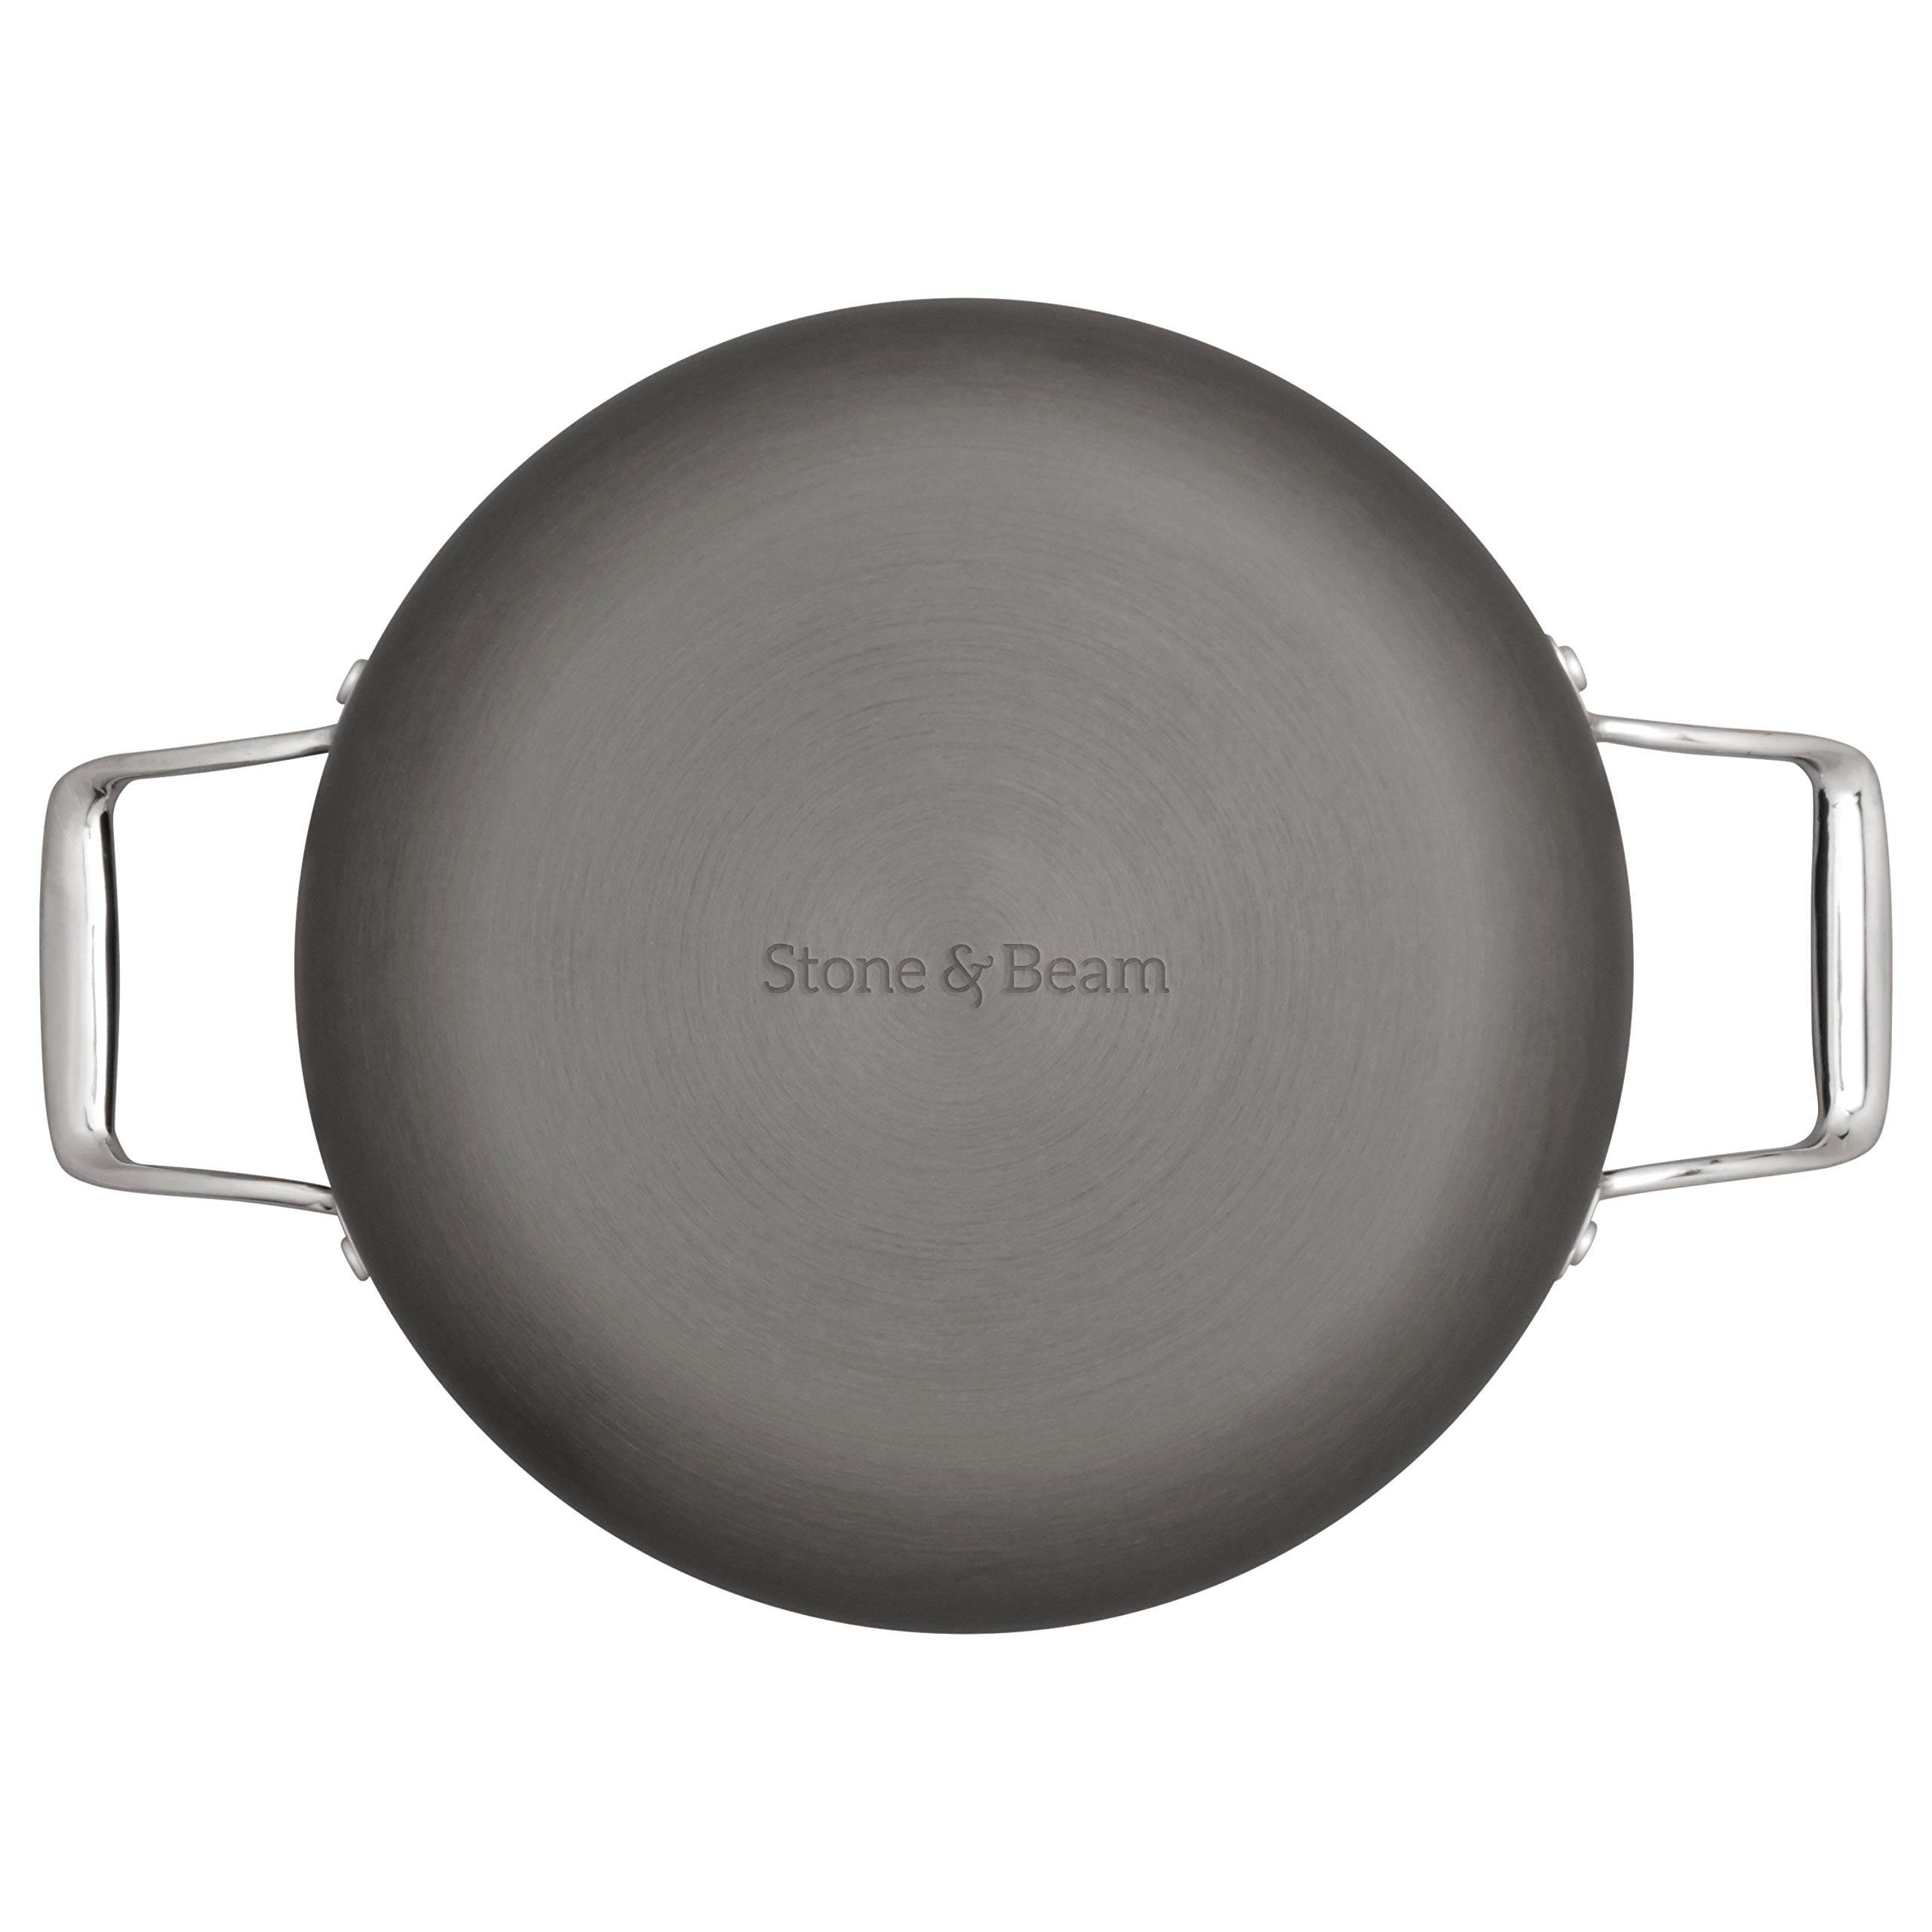 Stone & Beam Kitchen Cookware Set, 17-Piece, Pots and Pans, Hard-Anodized Non-Stick Aluminum by Stone & Beam (Image #4)